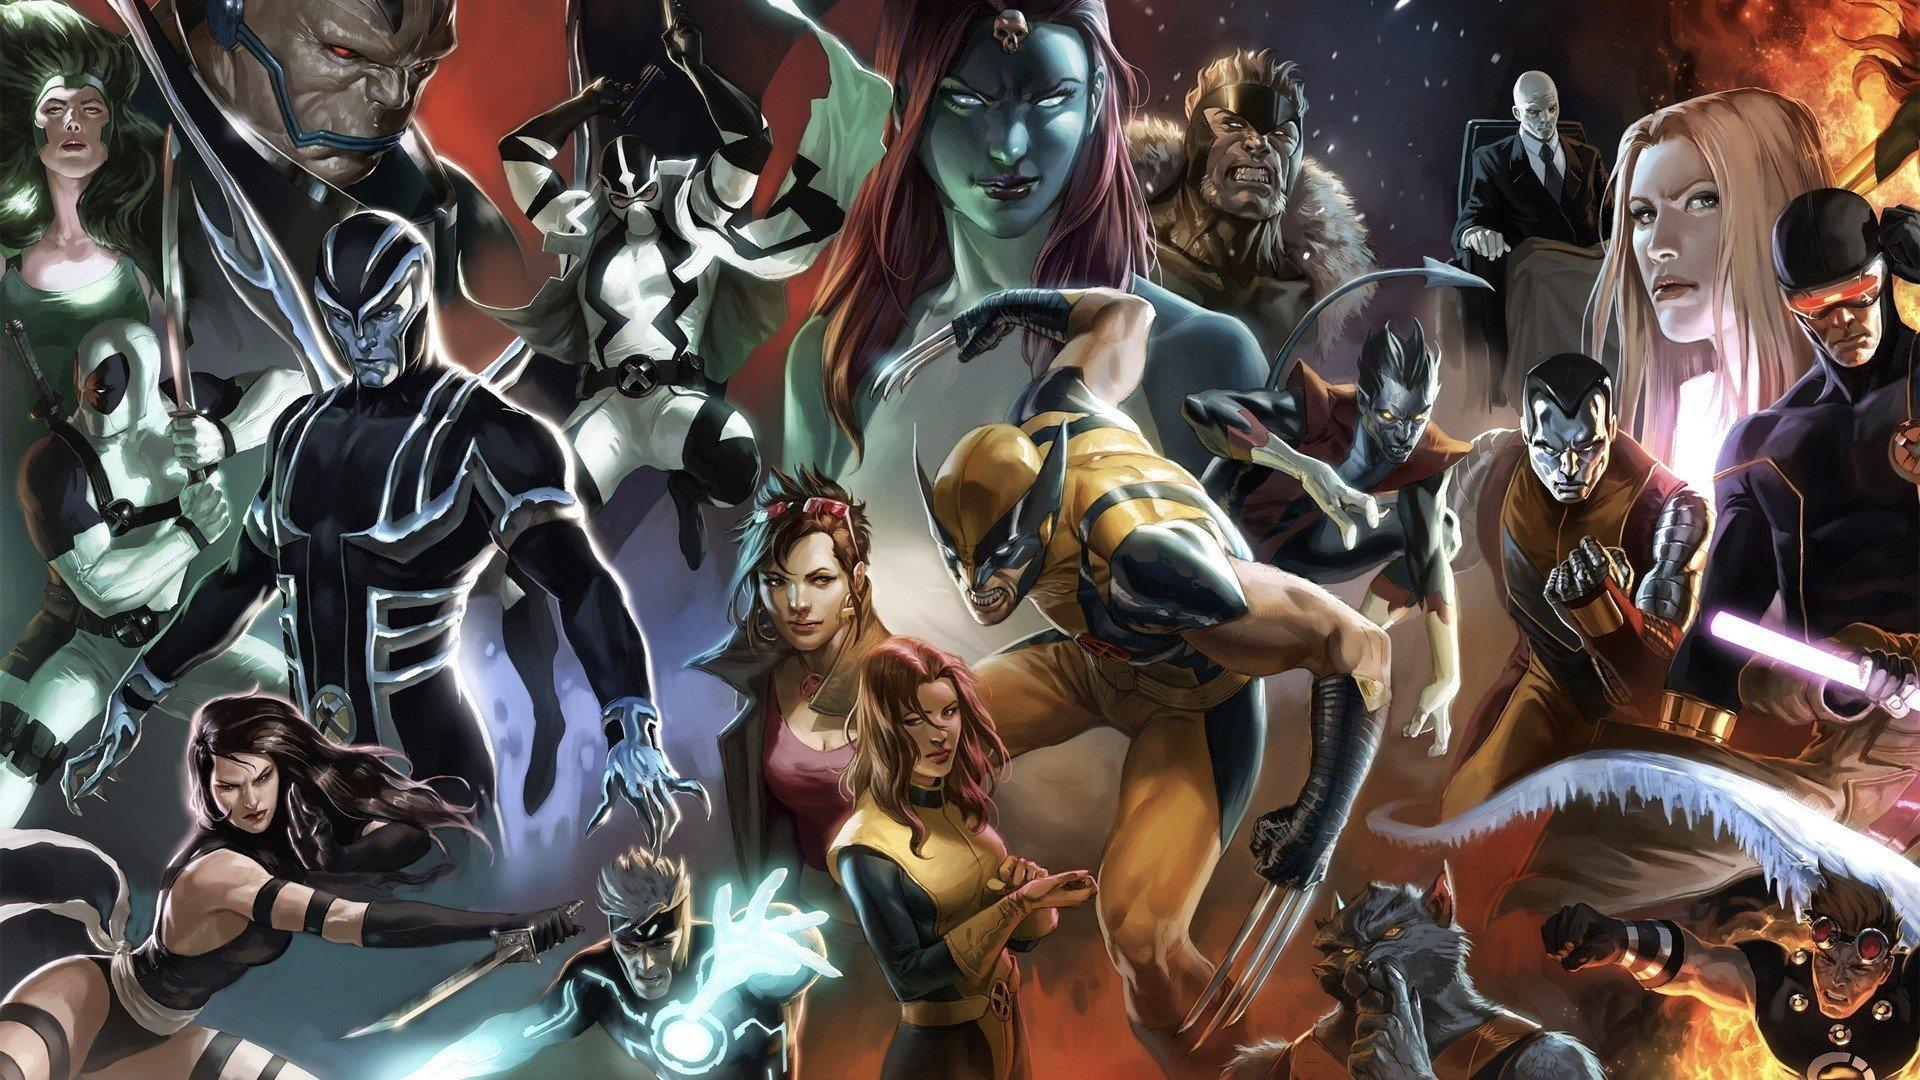 Cool Marvel Wallpapers HD - Epic Heroes Select - Image Gallery